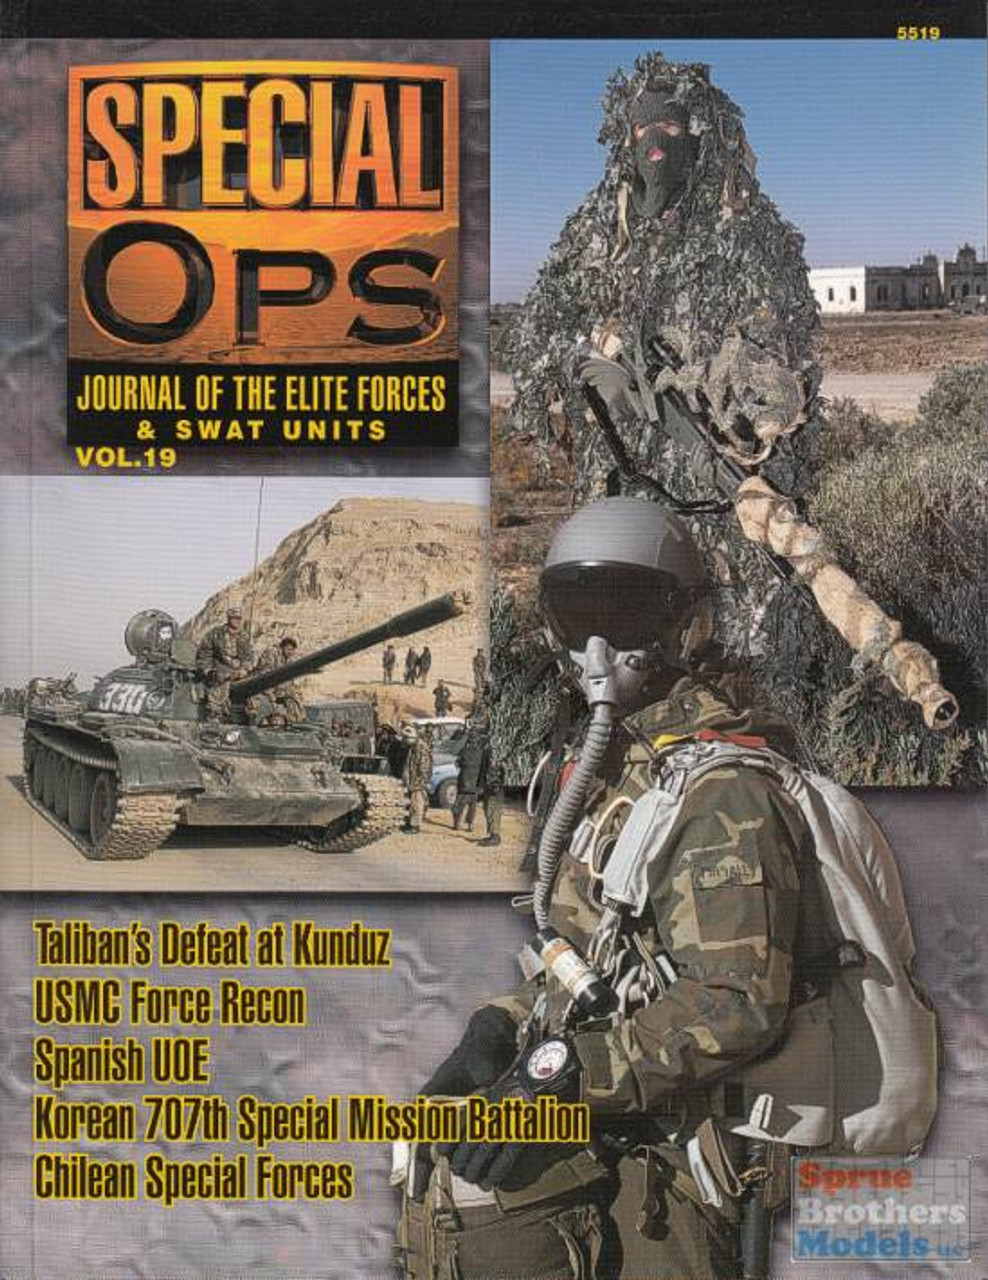 CCD5519 Concord Publications - Special Ops Volume #19